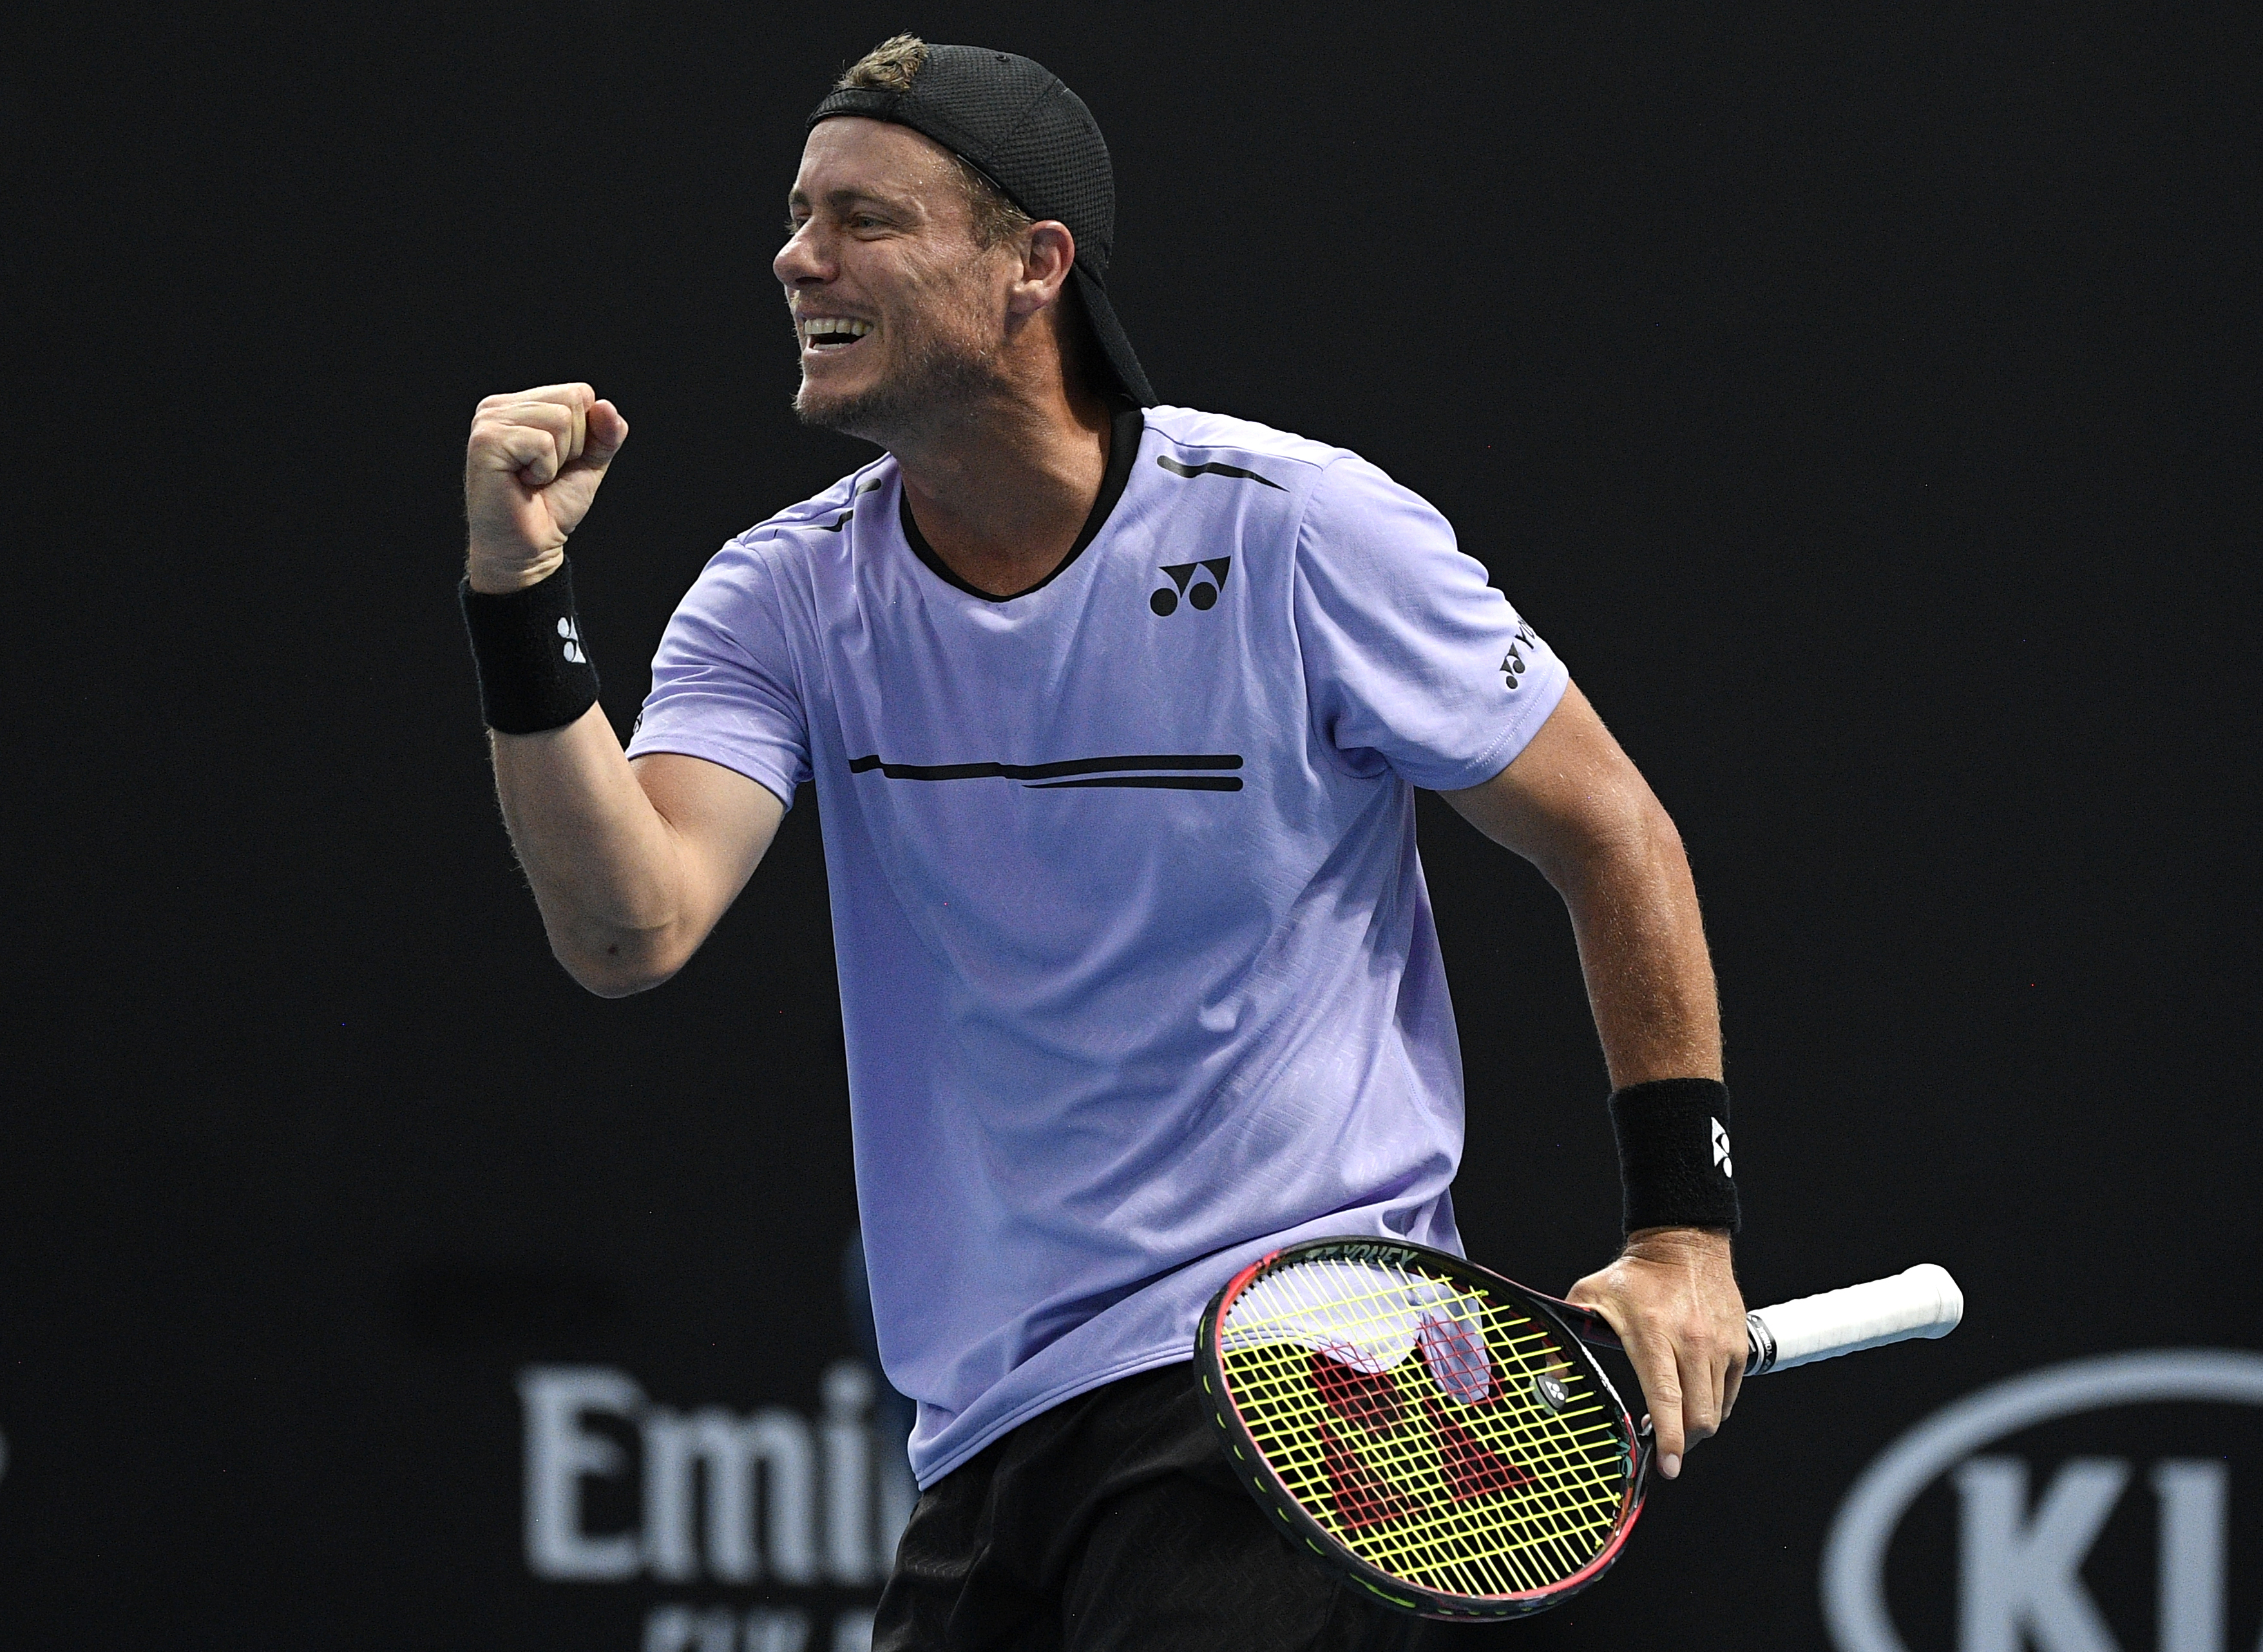 Lleyton Hewitt has responded to criticism from Bernard Tomic